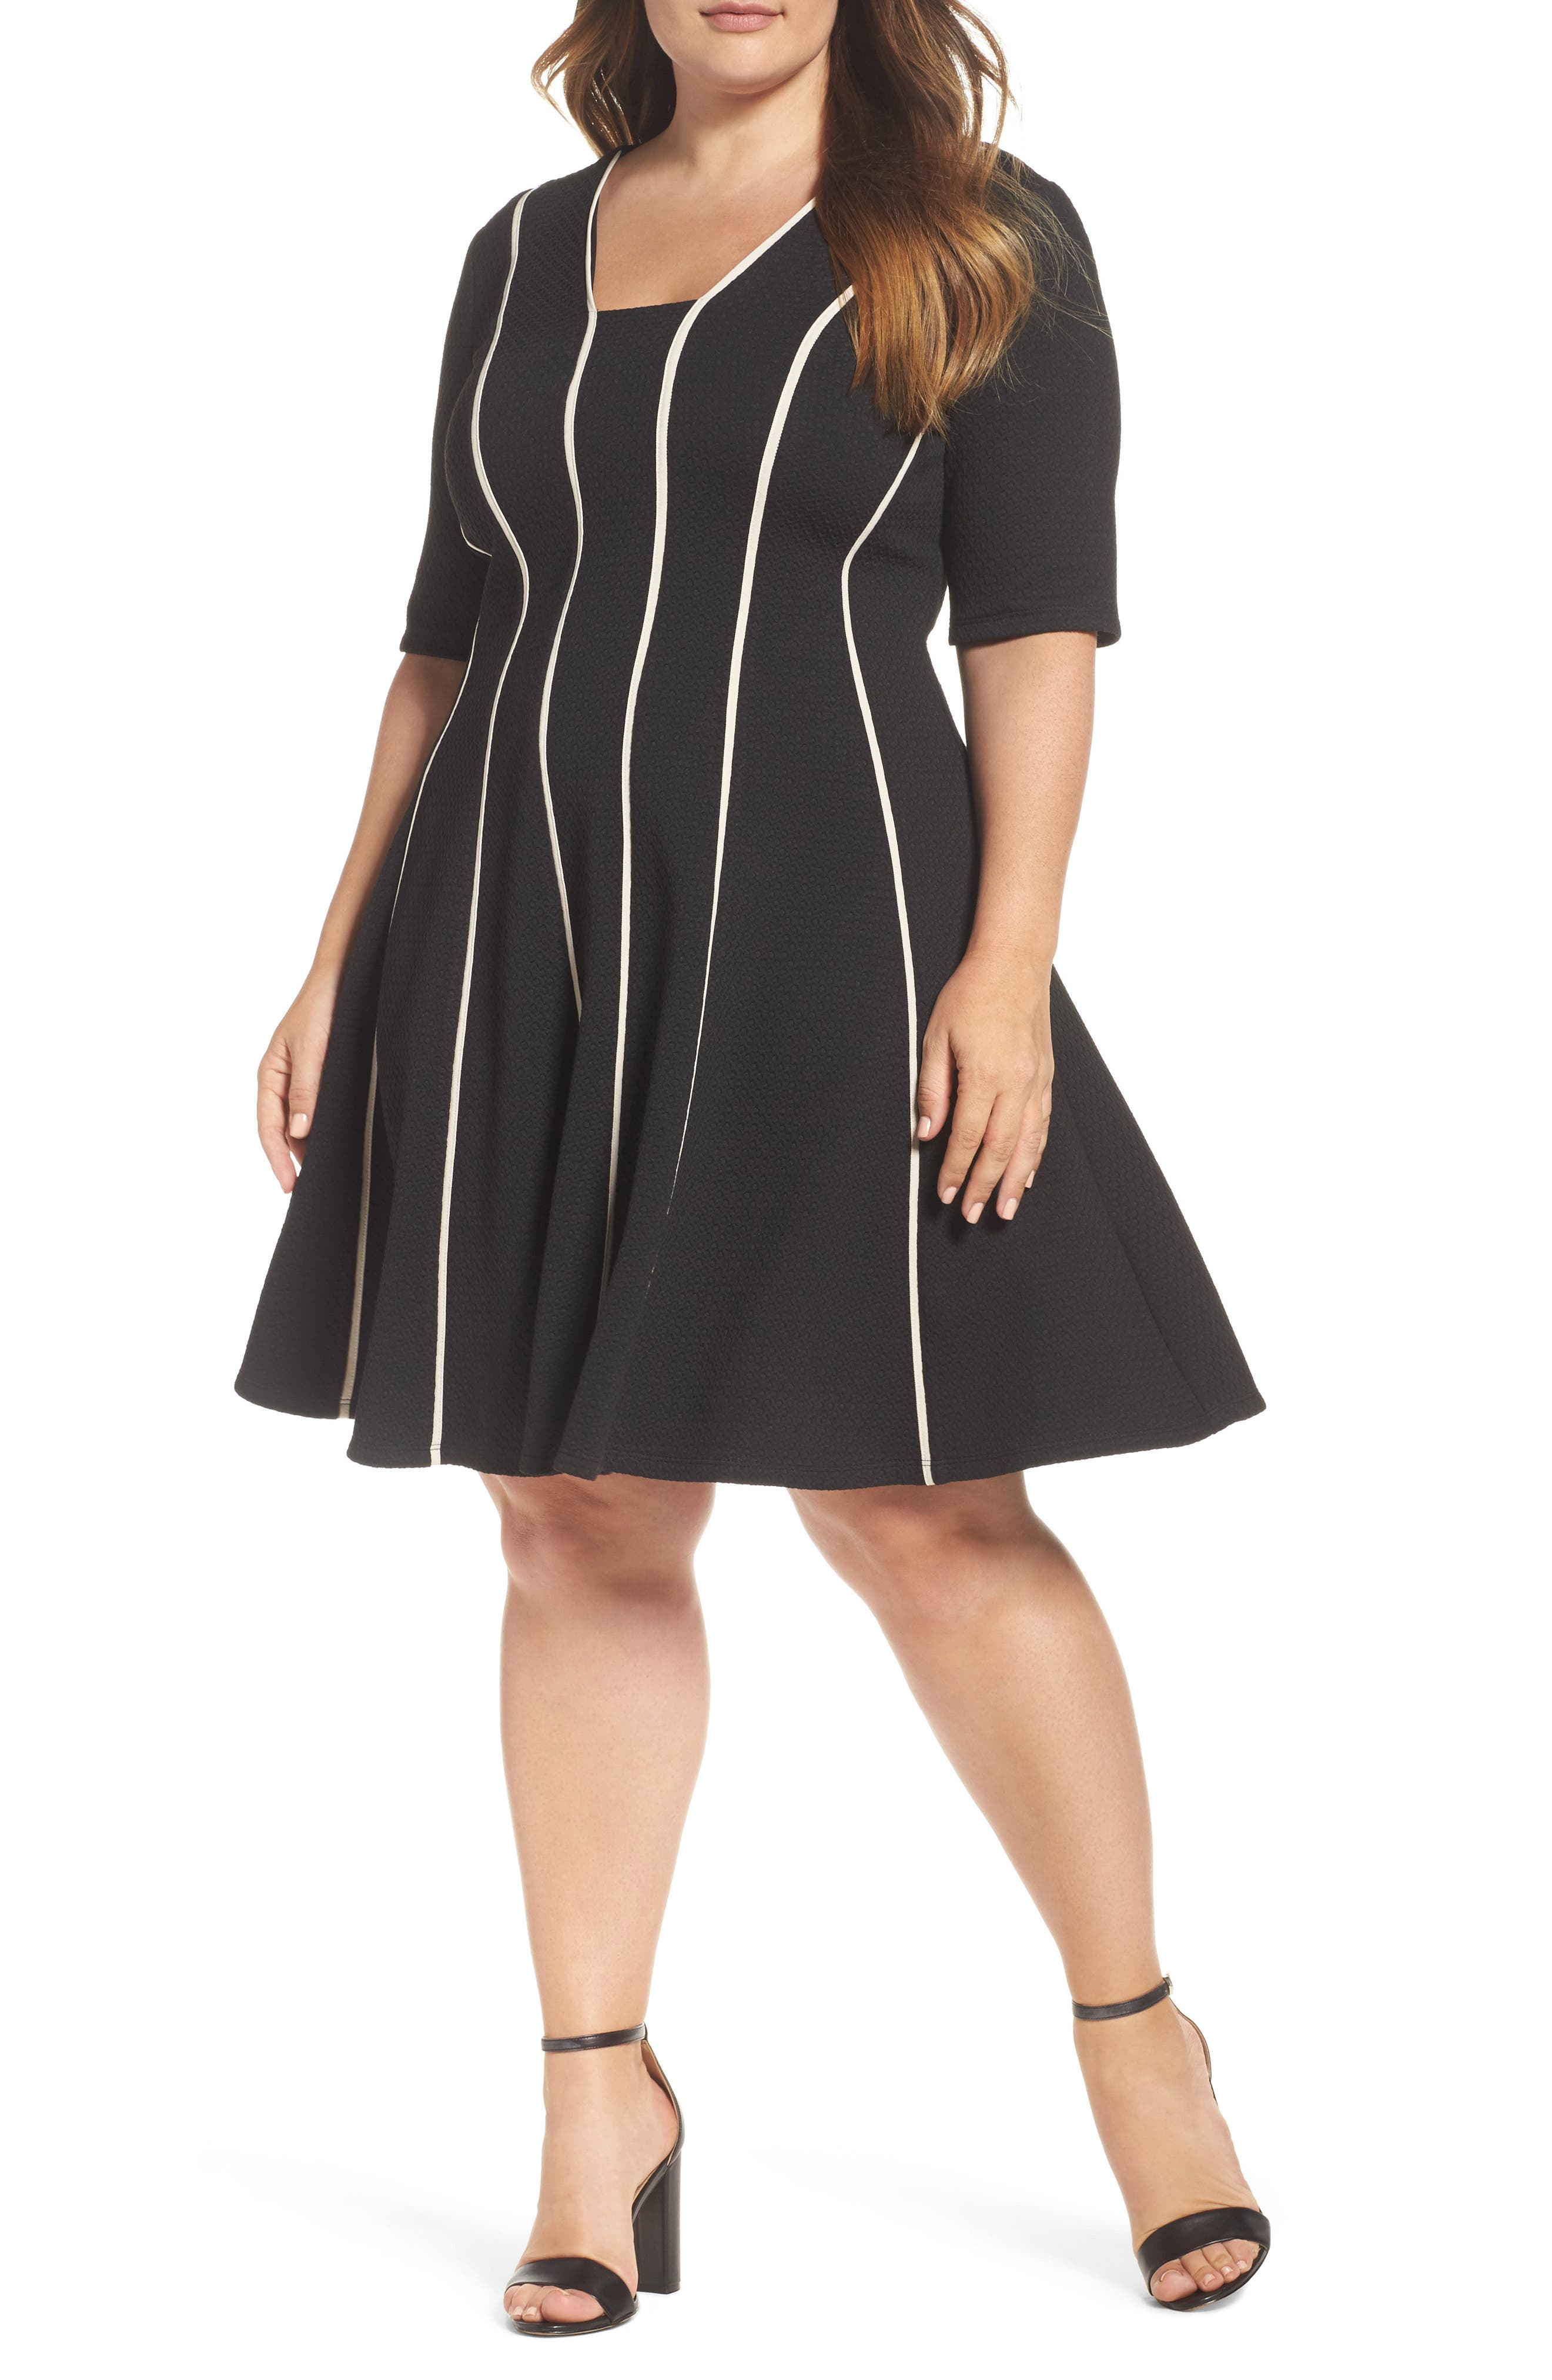 Gabby Skye Contrast Piping Knit Fit & Flare Dress (Plus Size)